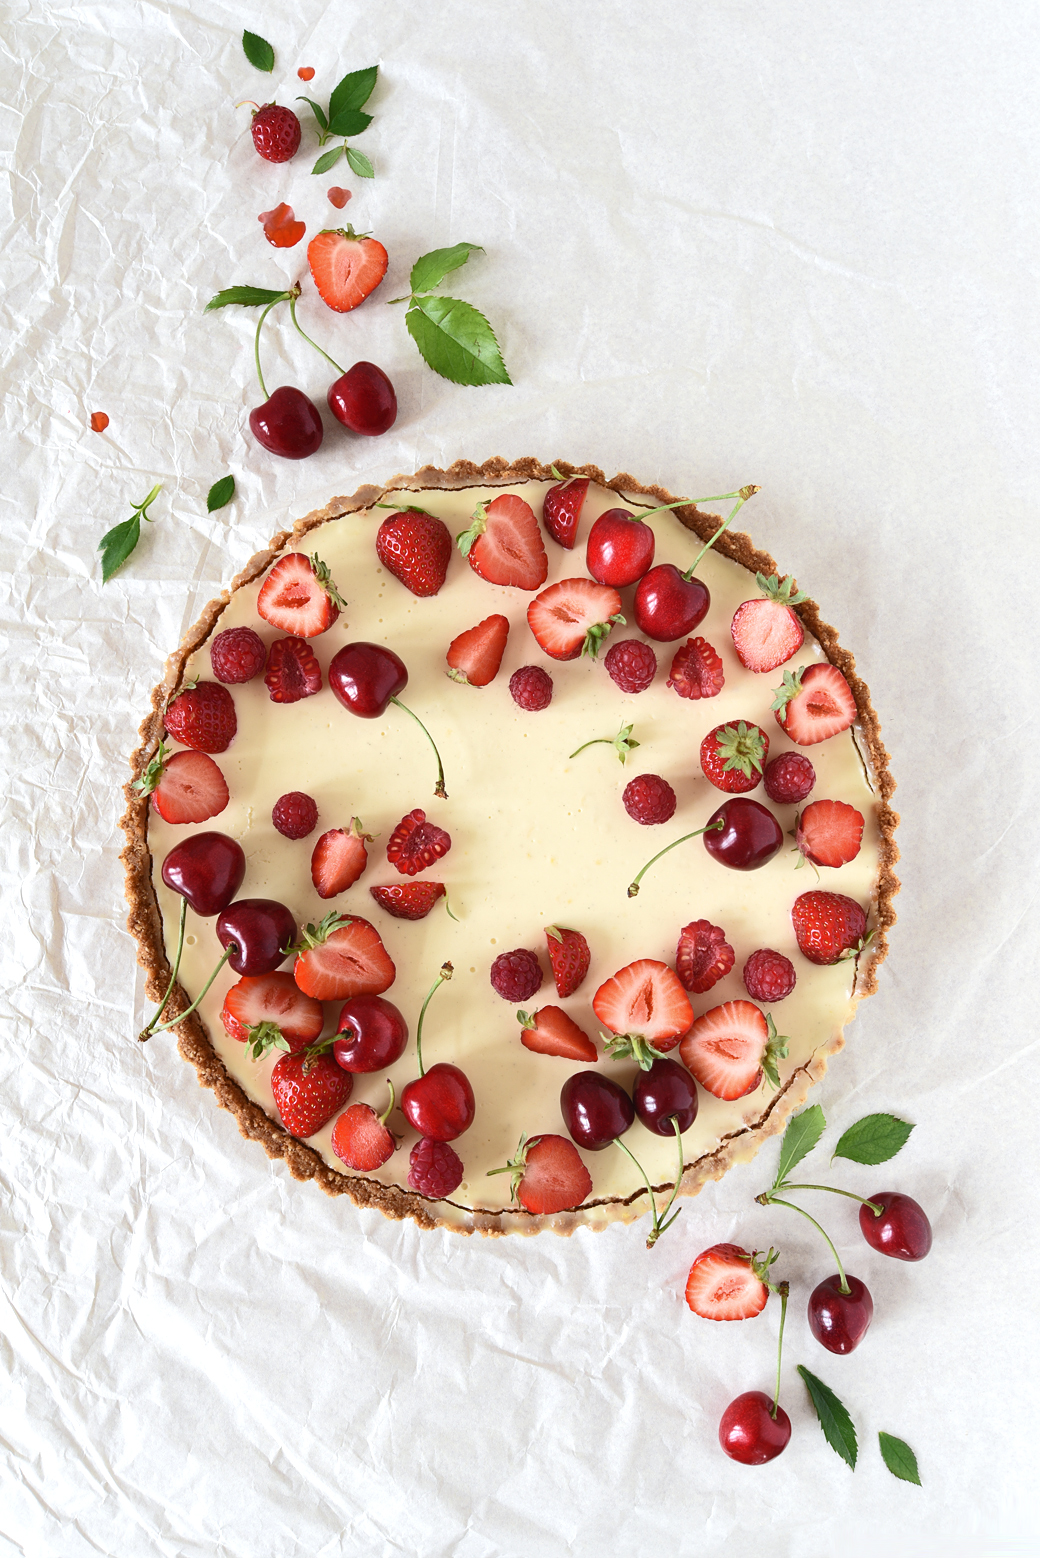 A Lovely Midsommer Garden Party Needs This Lemon Tart and These Flowers